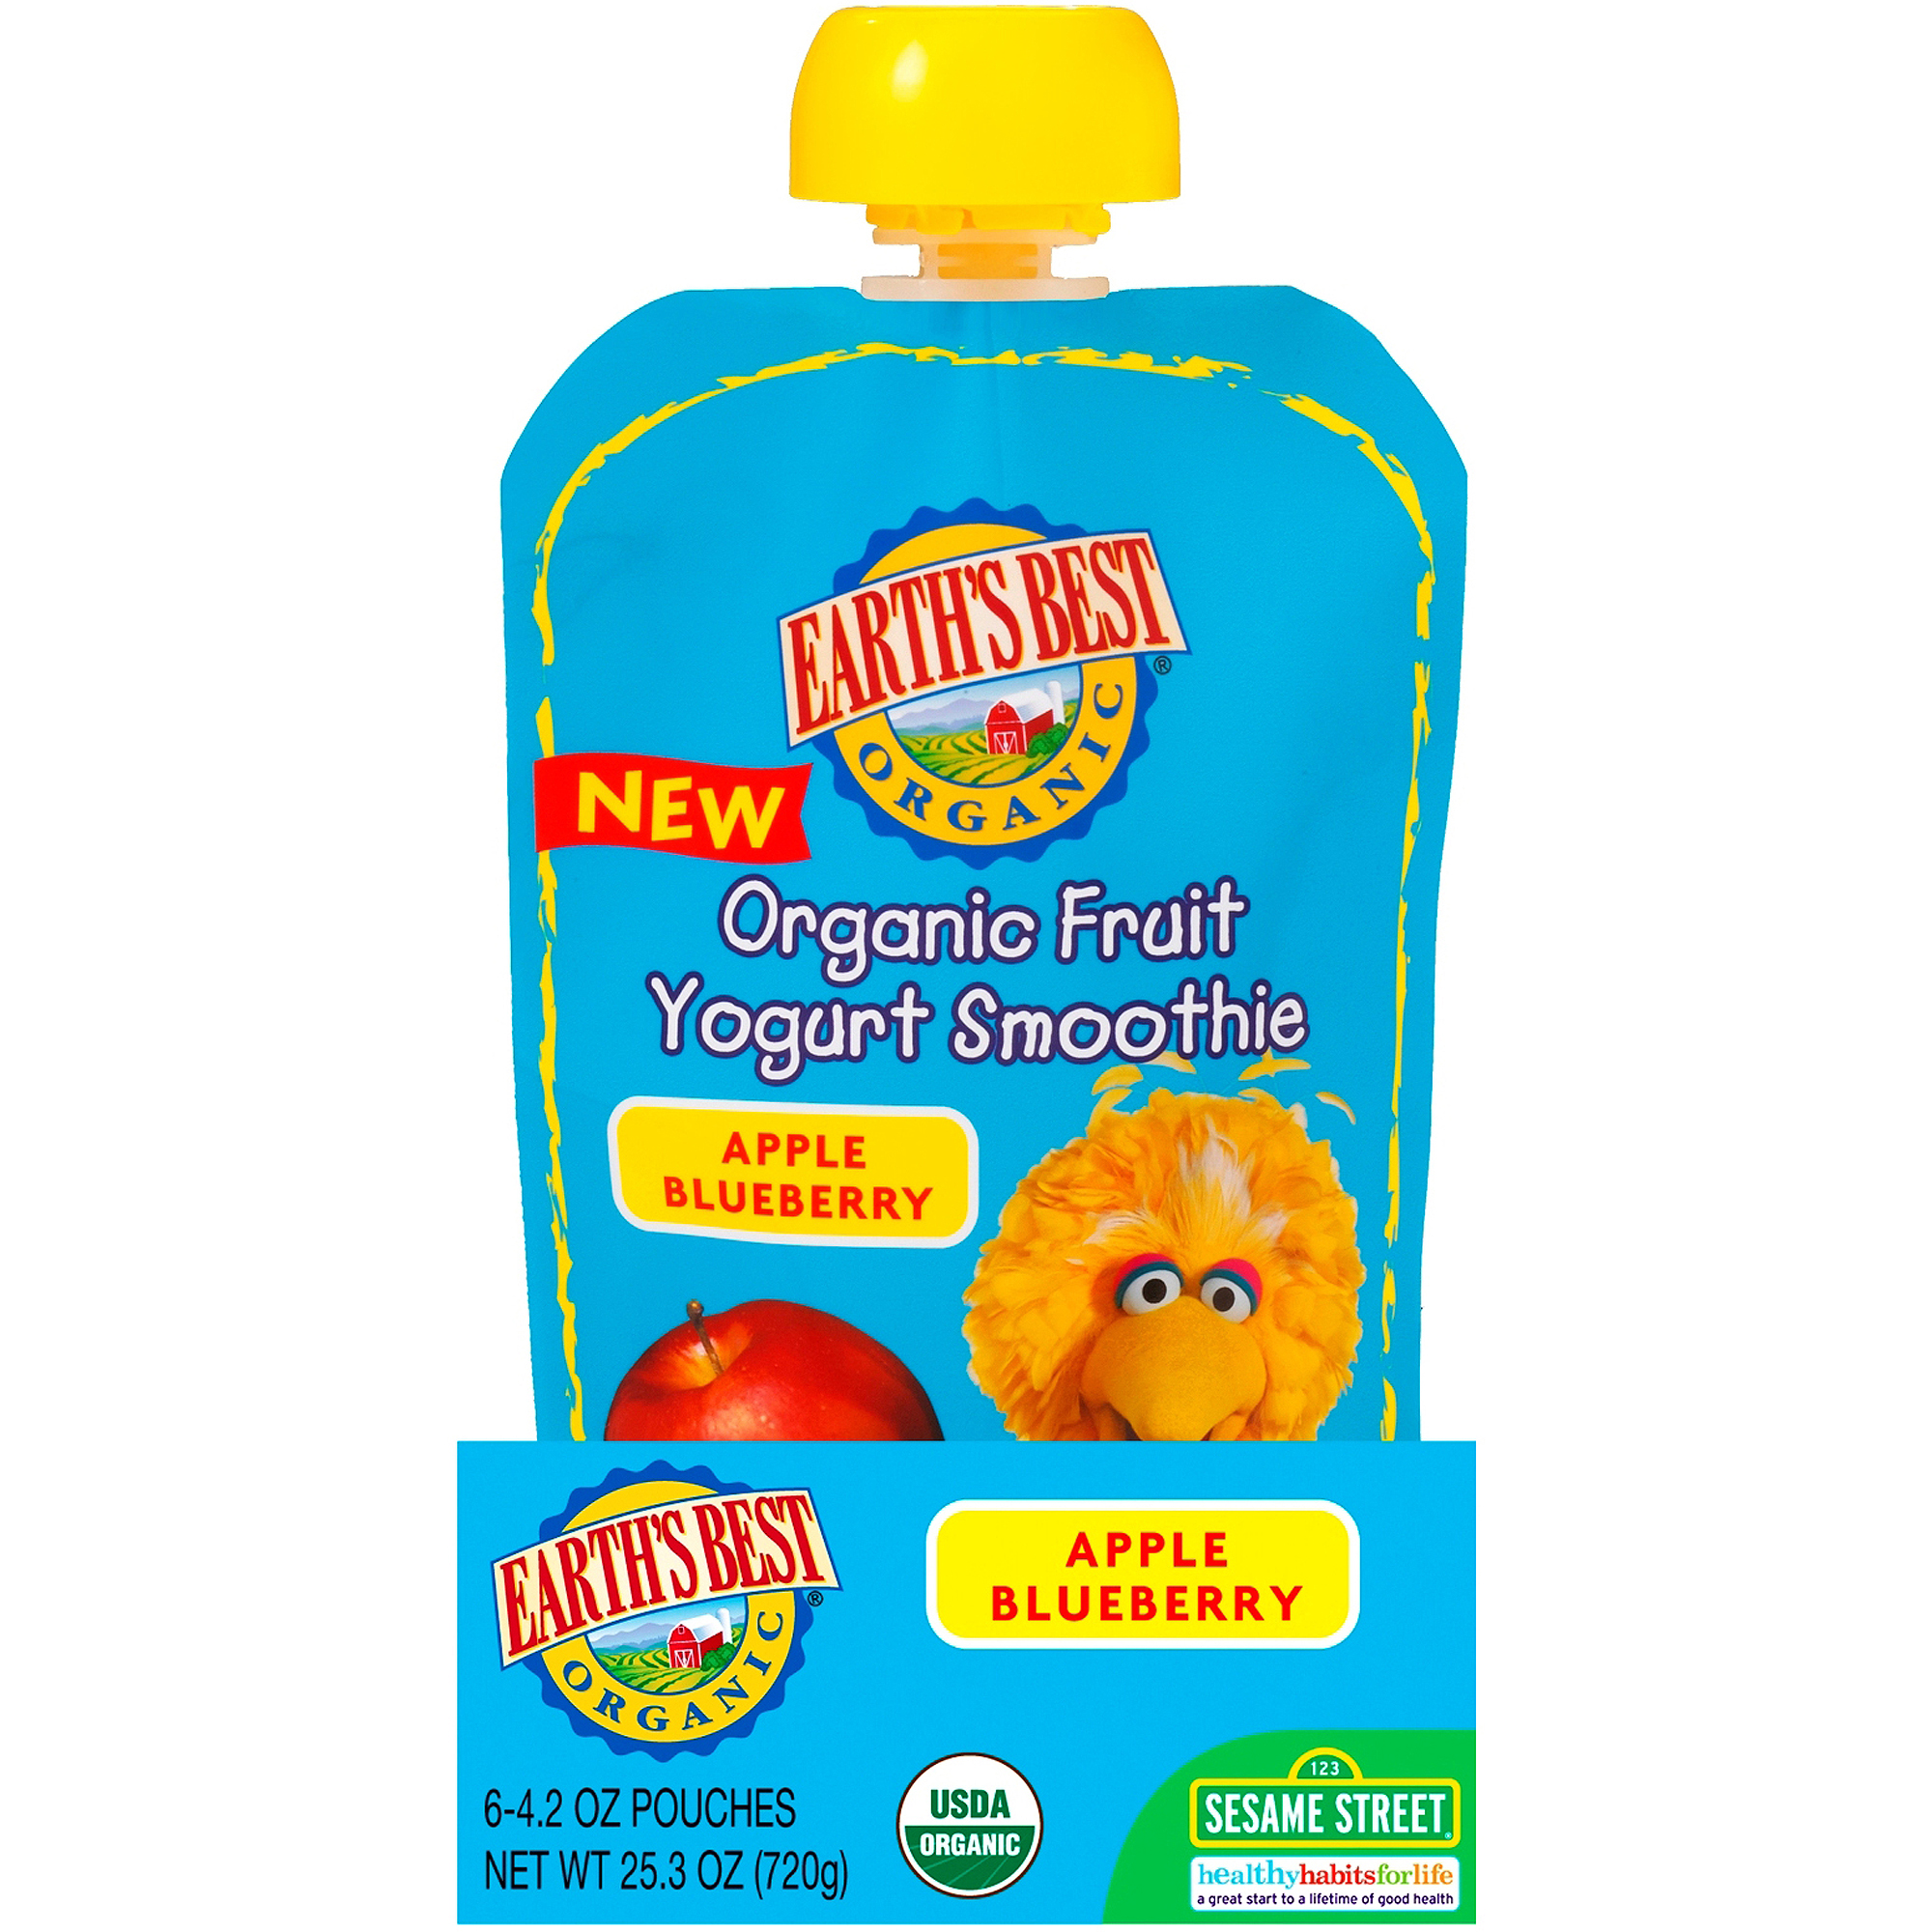 Earth's Best Organic Sesame Street Apple Blueberry Fruit Yogurt Smoothie, 4.2 oz, (Pack of 6)